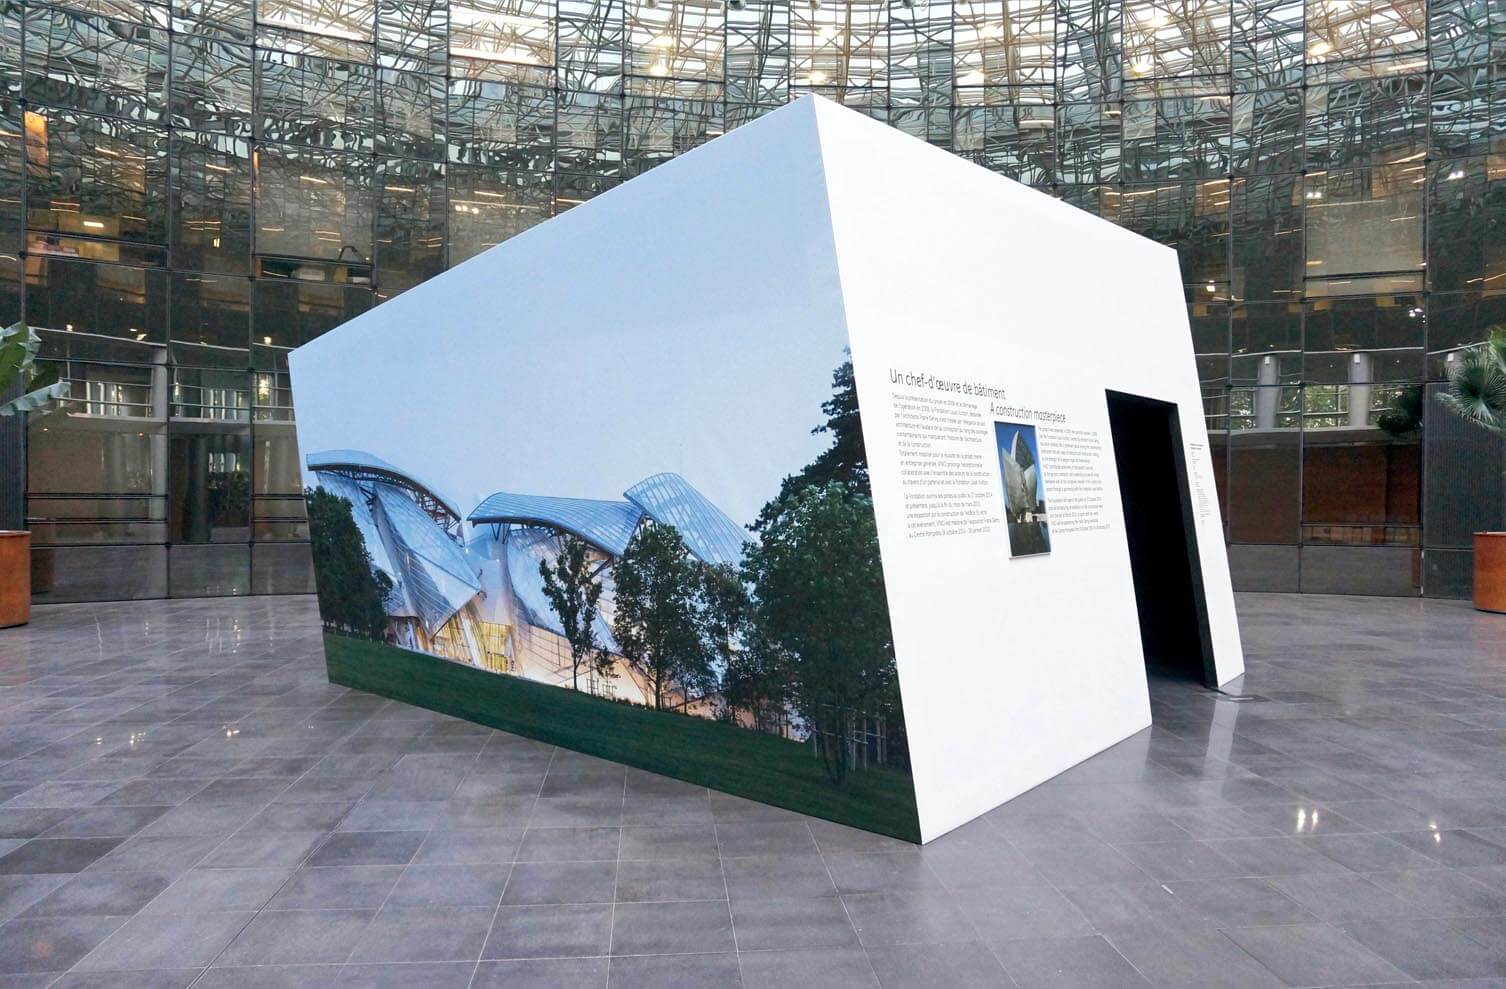 Image Expositions groupe Vinci 5